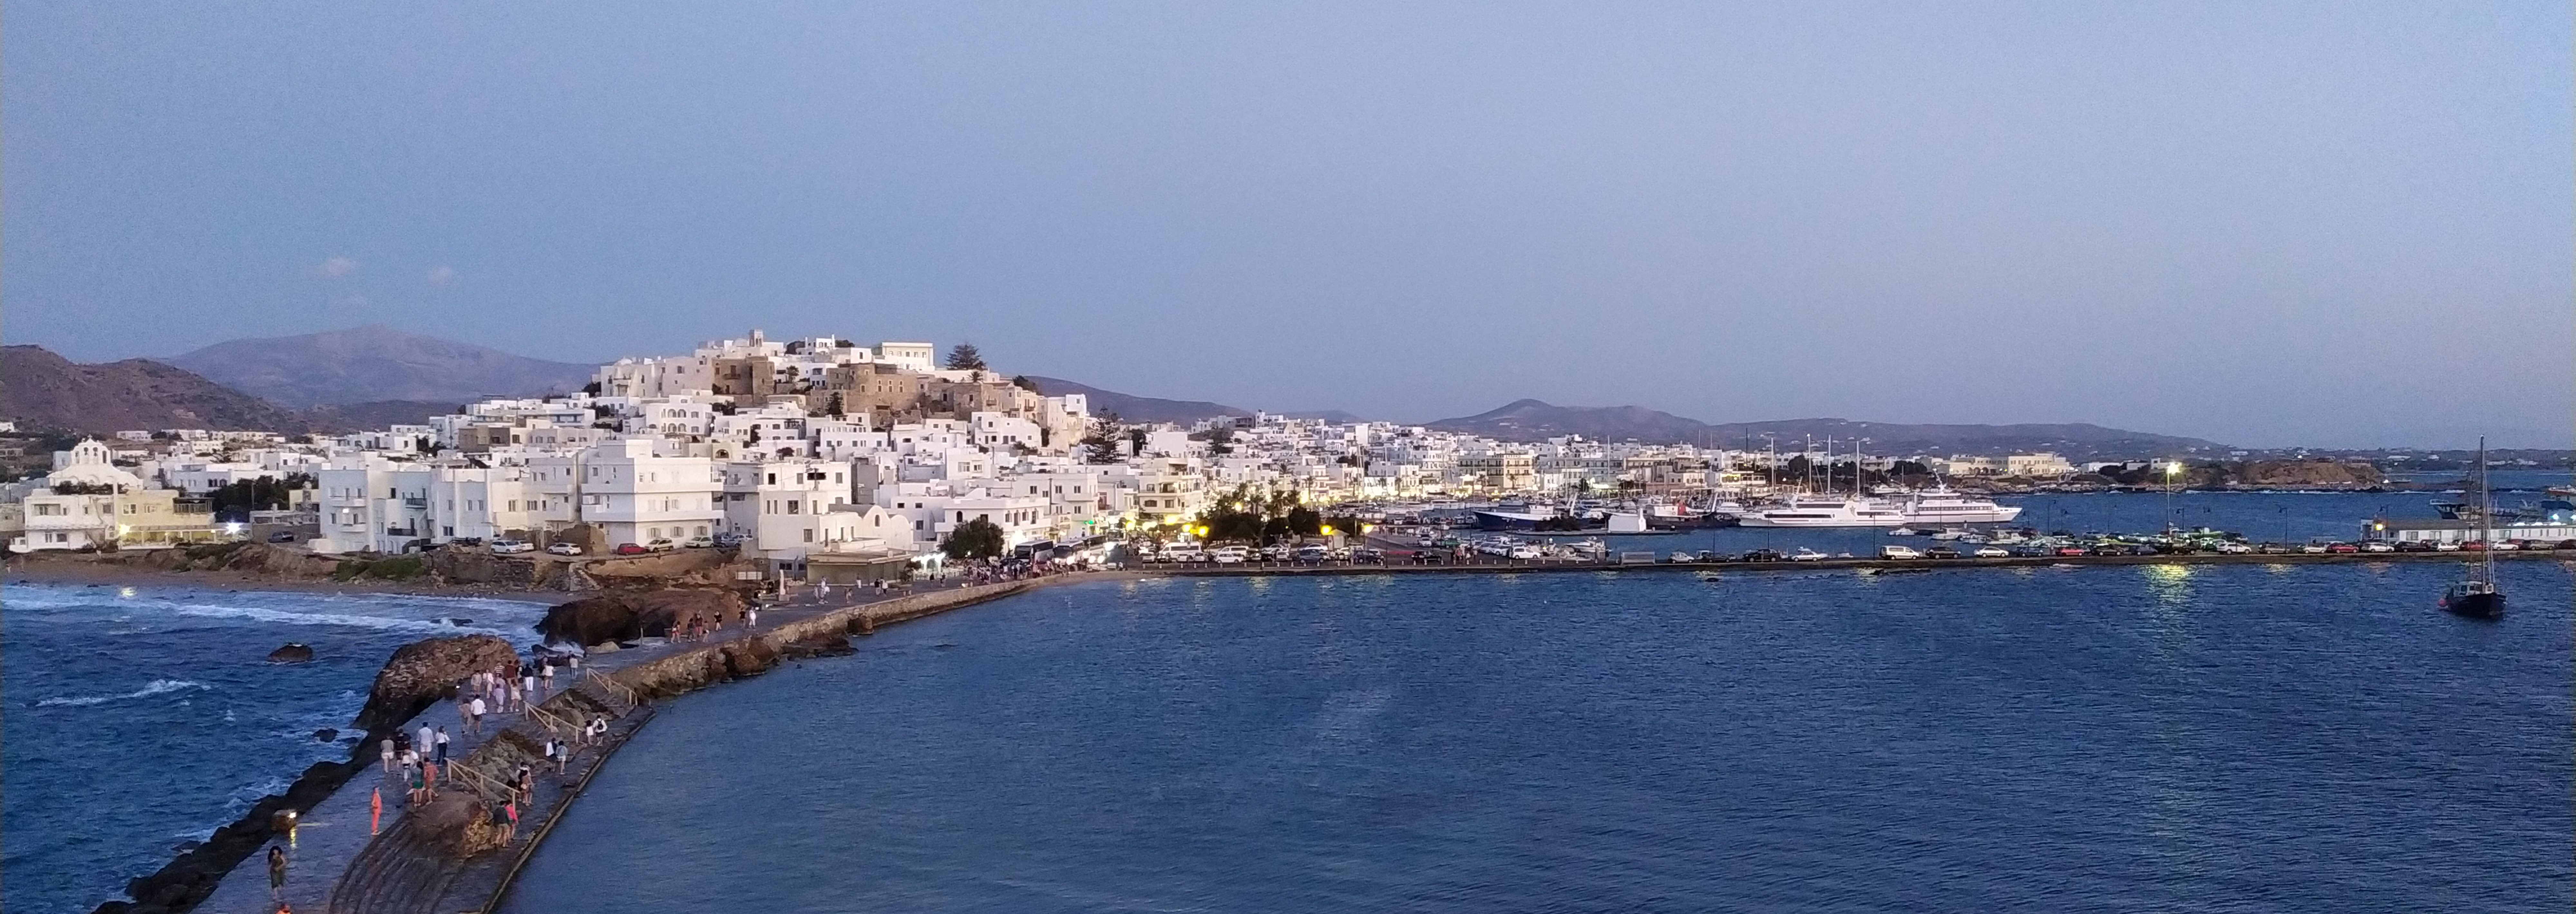 Naxos: the town and its picturesque alleys